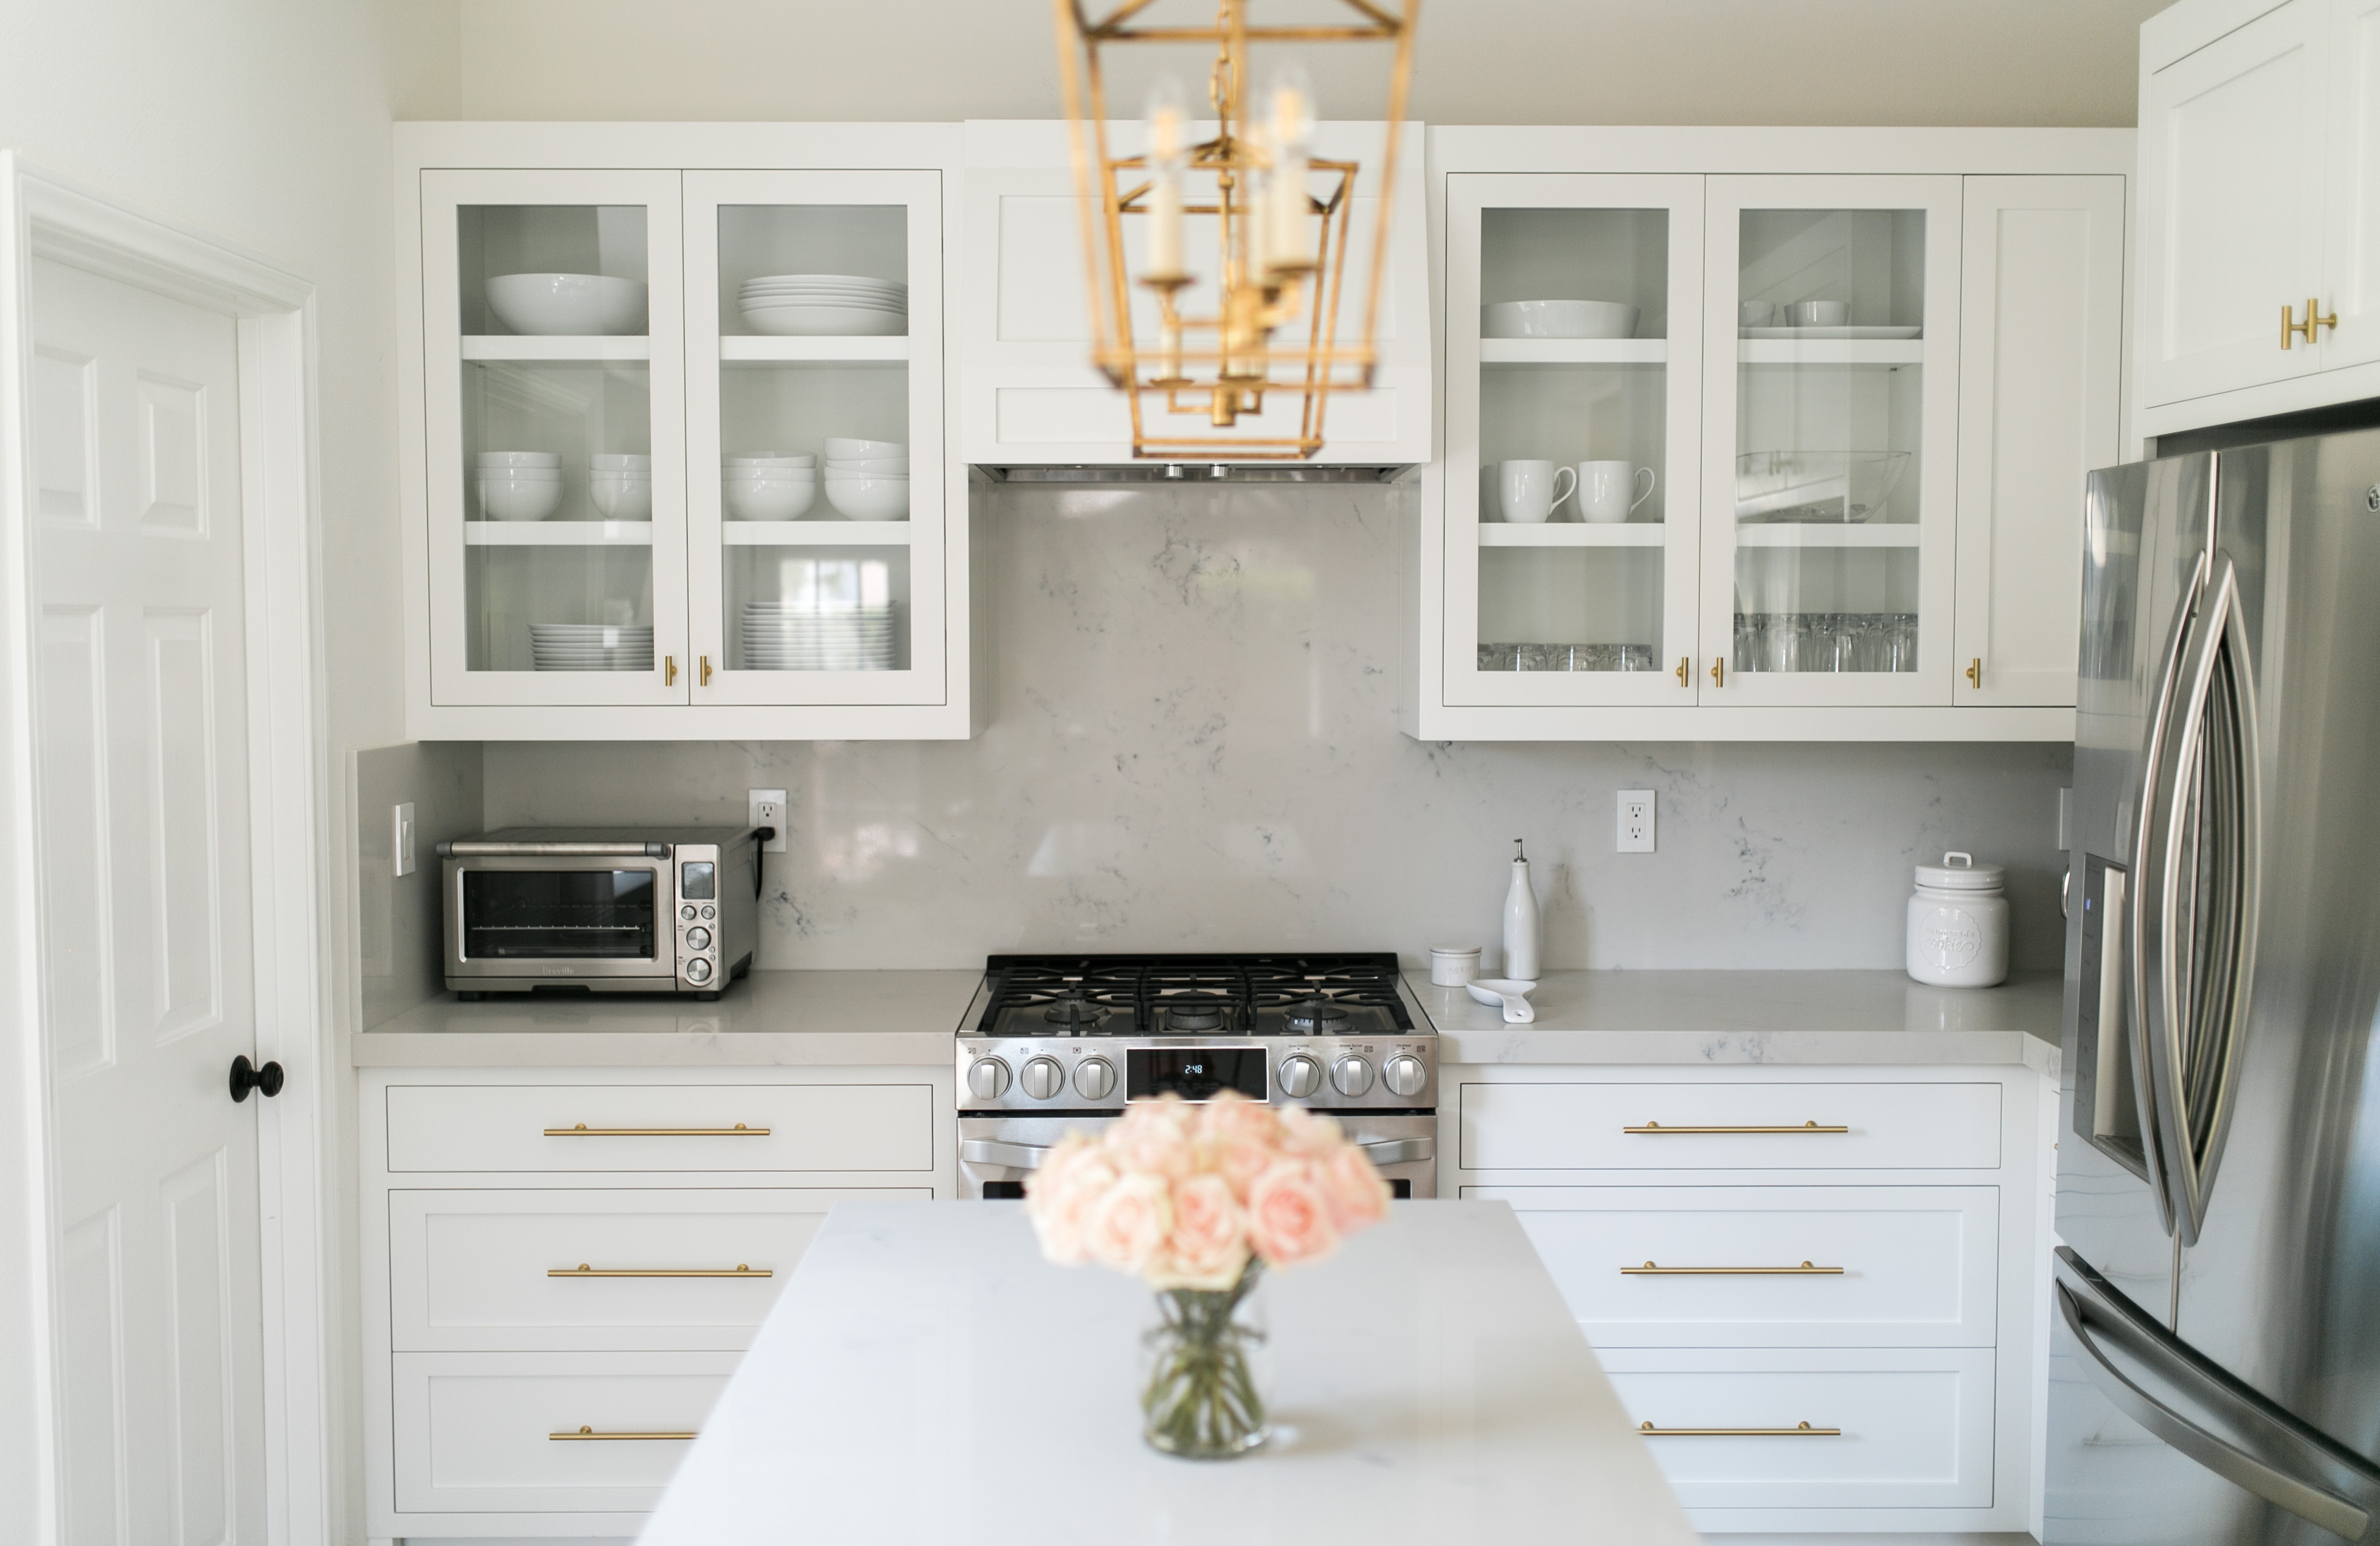 daryl-ann denner reveals white marble kitchen with gold lanterns and gold hardware and white dishes